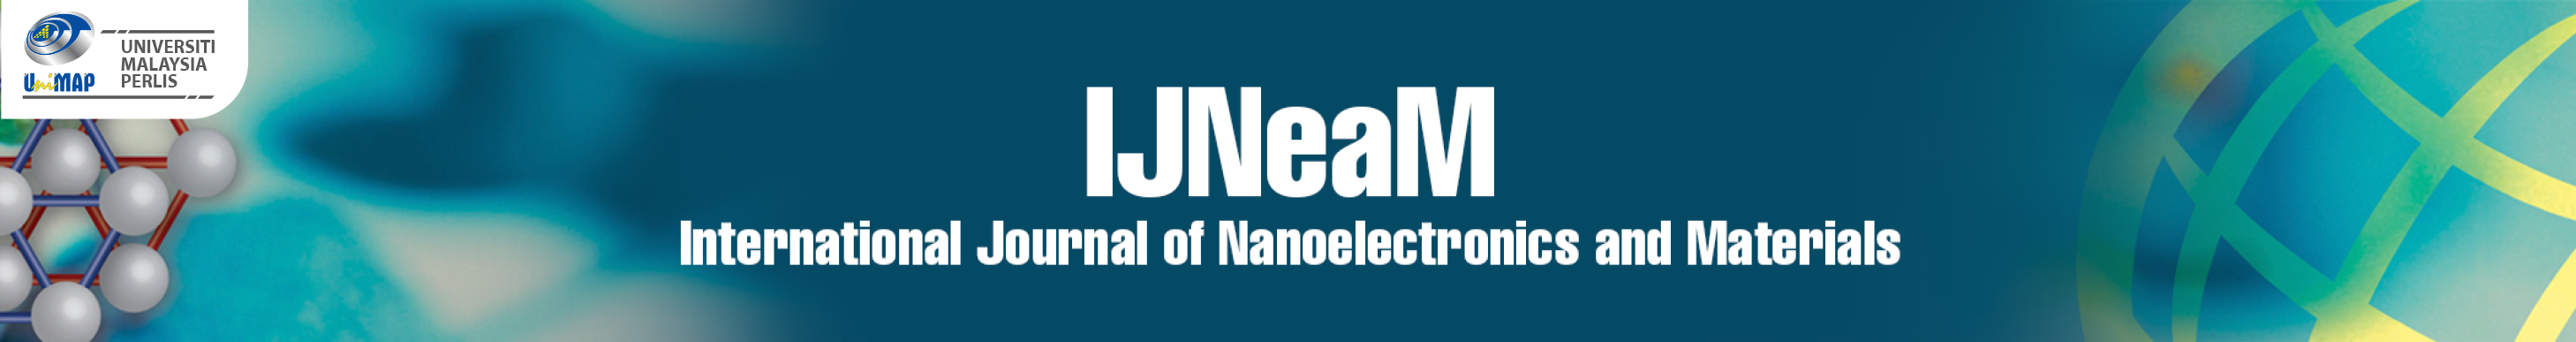 IJNeaM Website